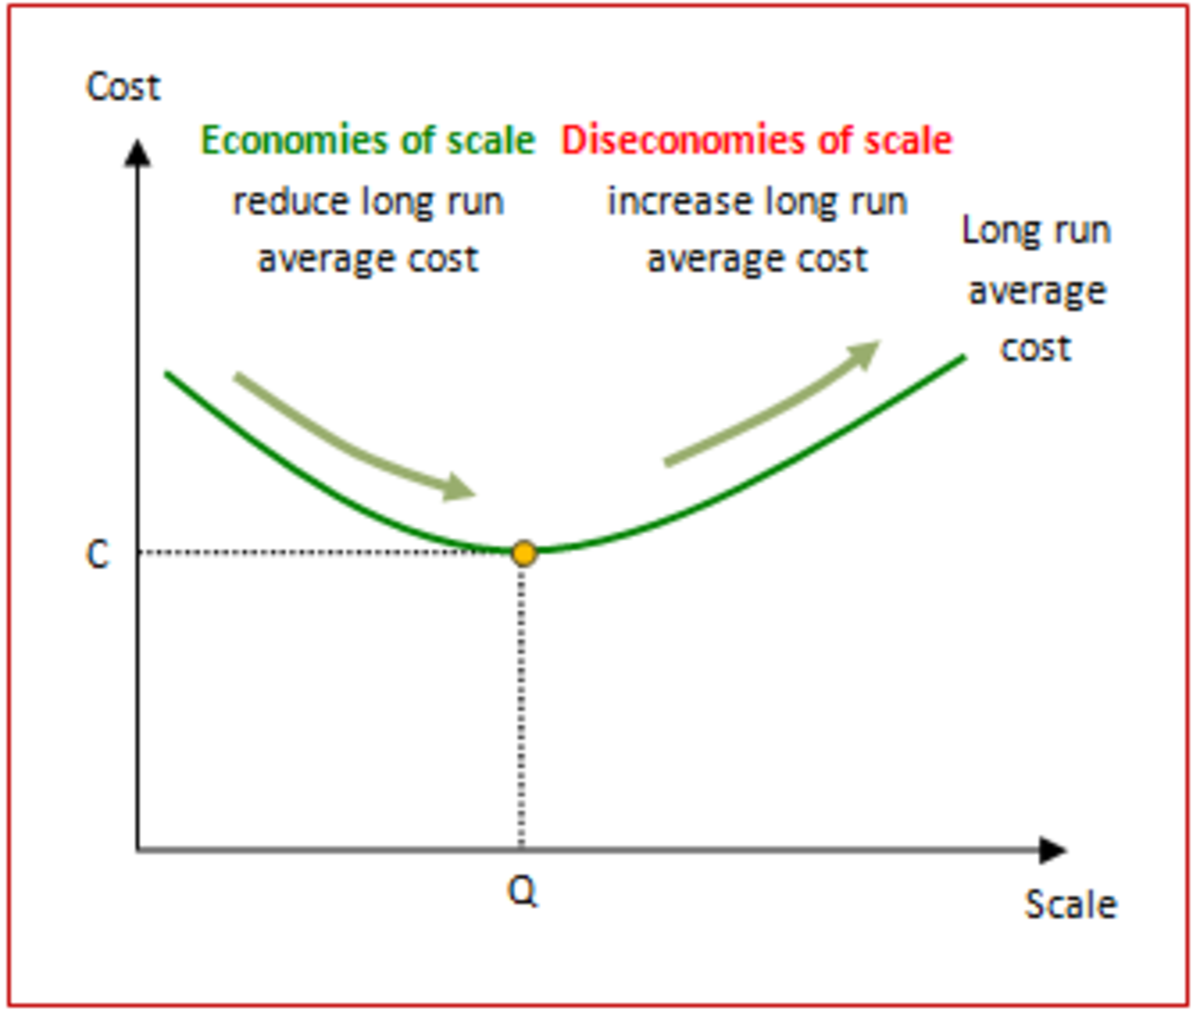 EXTERNAL ECONOMIES AND EXTERNAL DISECONOMIES OF SCALE